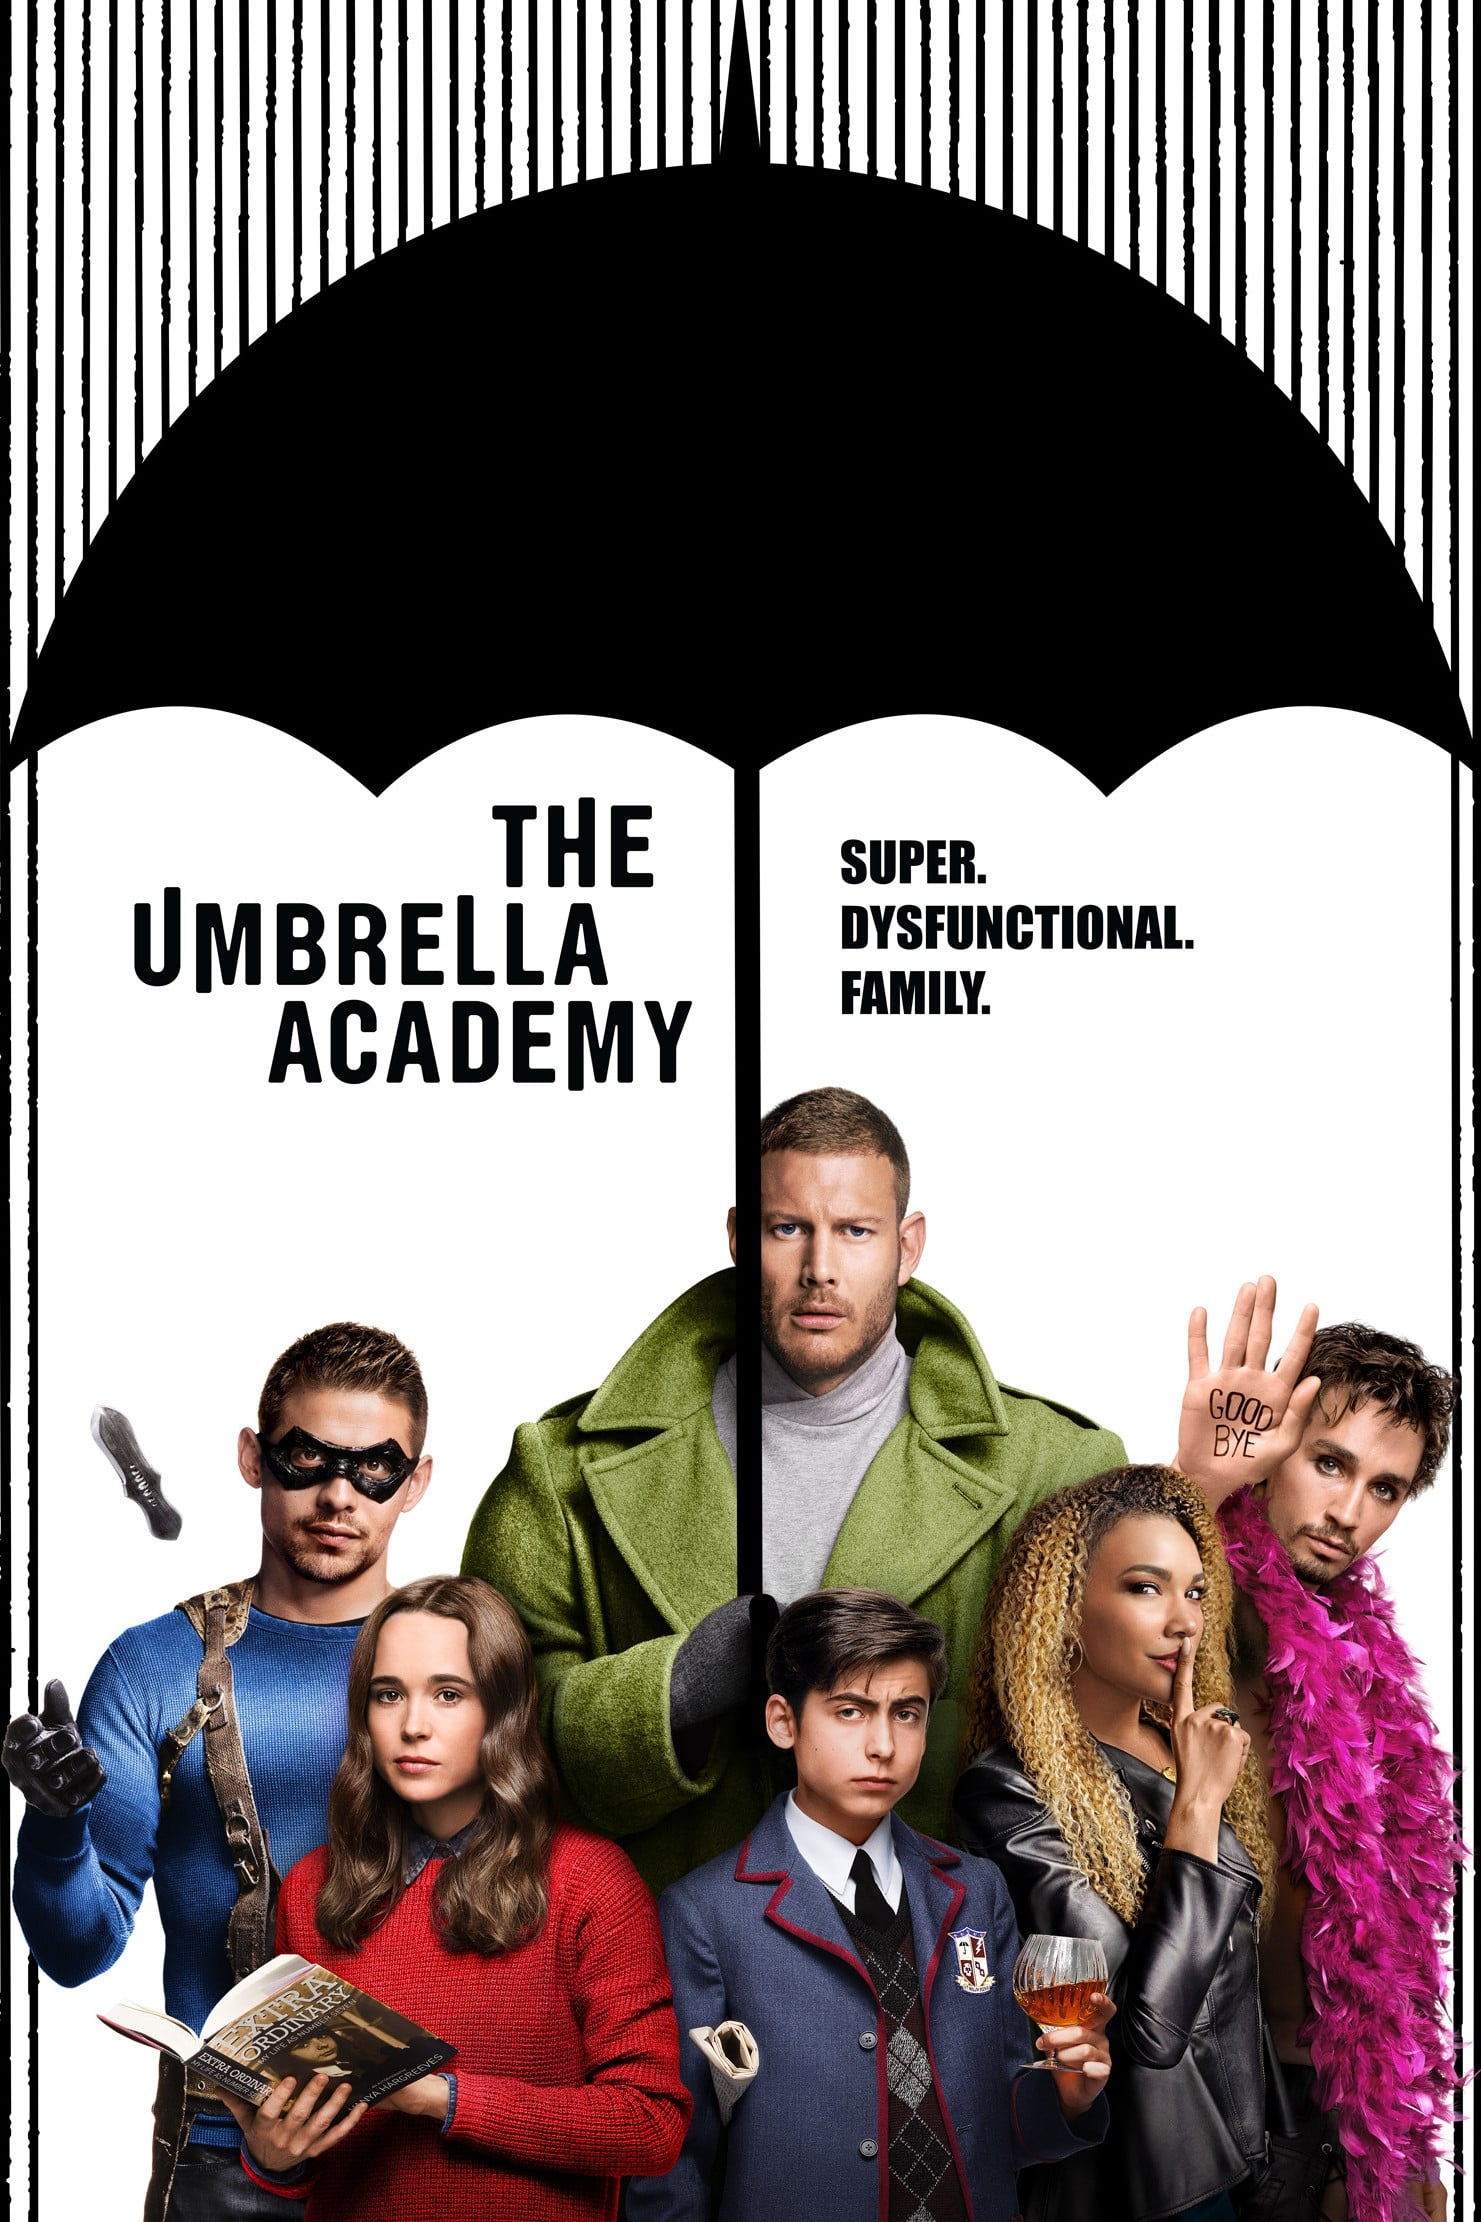 The Umbrella Academy S1 EP2 (2019) Subtitle Indonesia